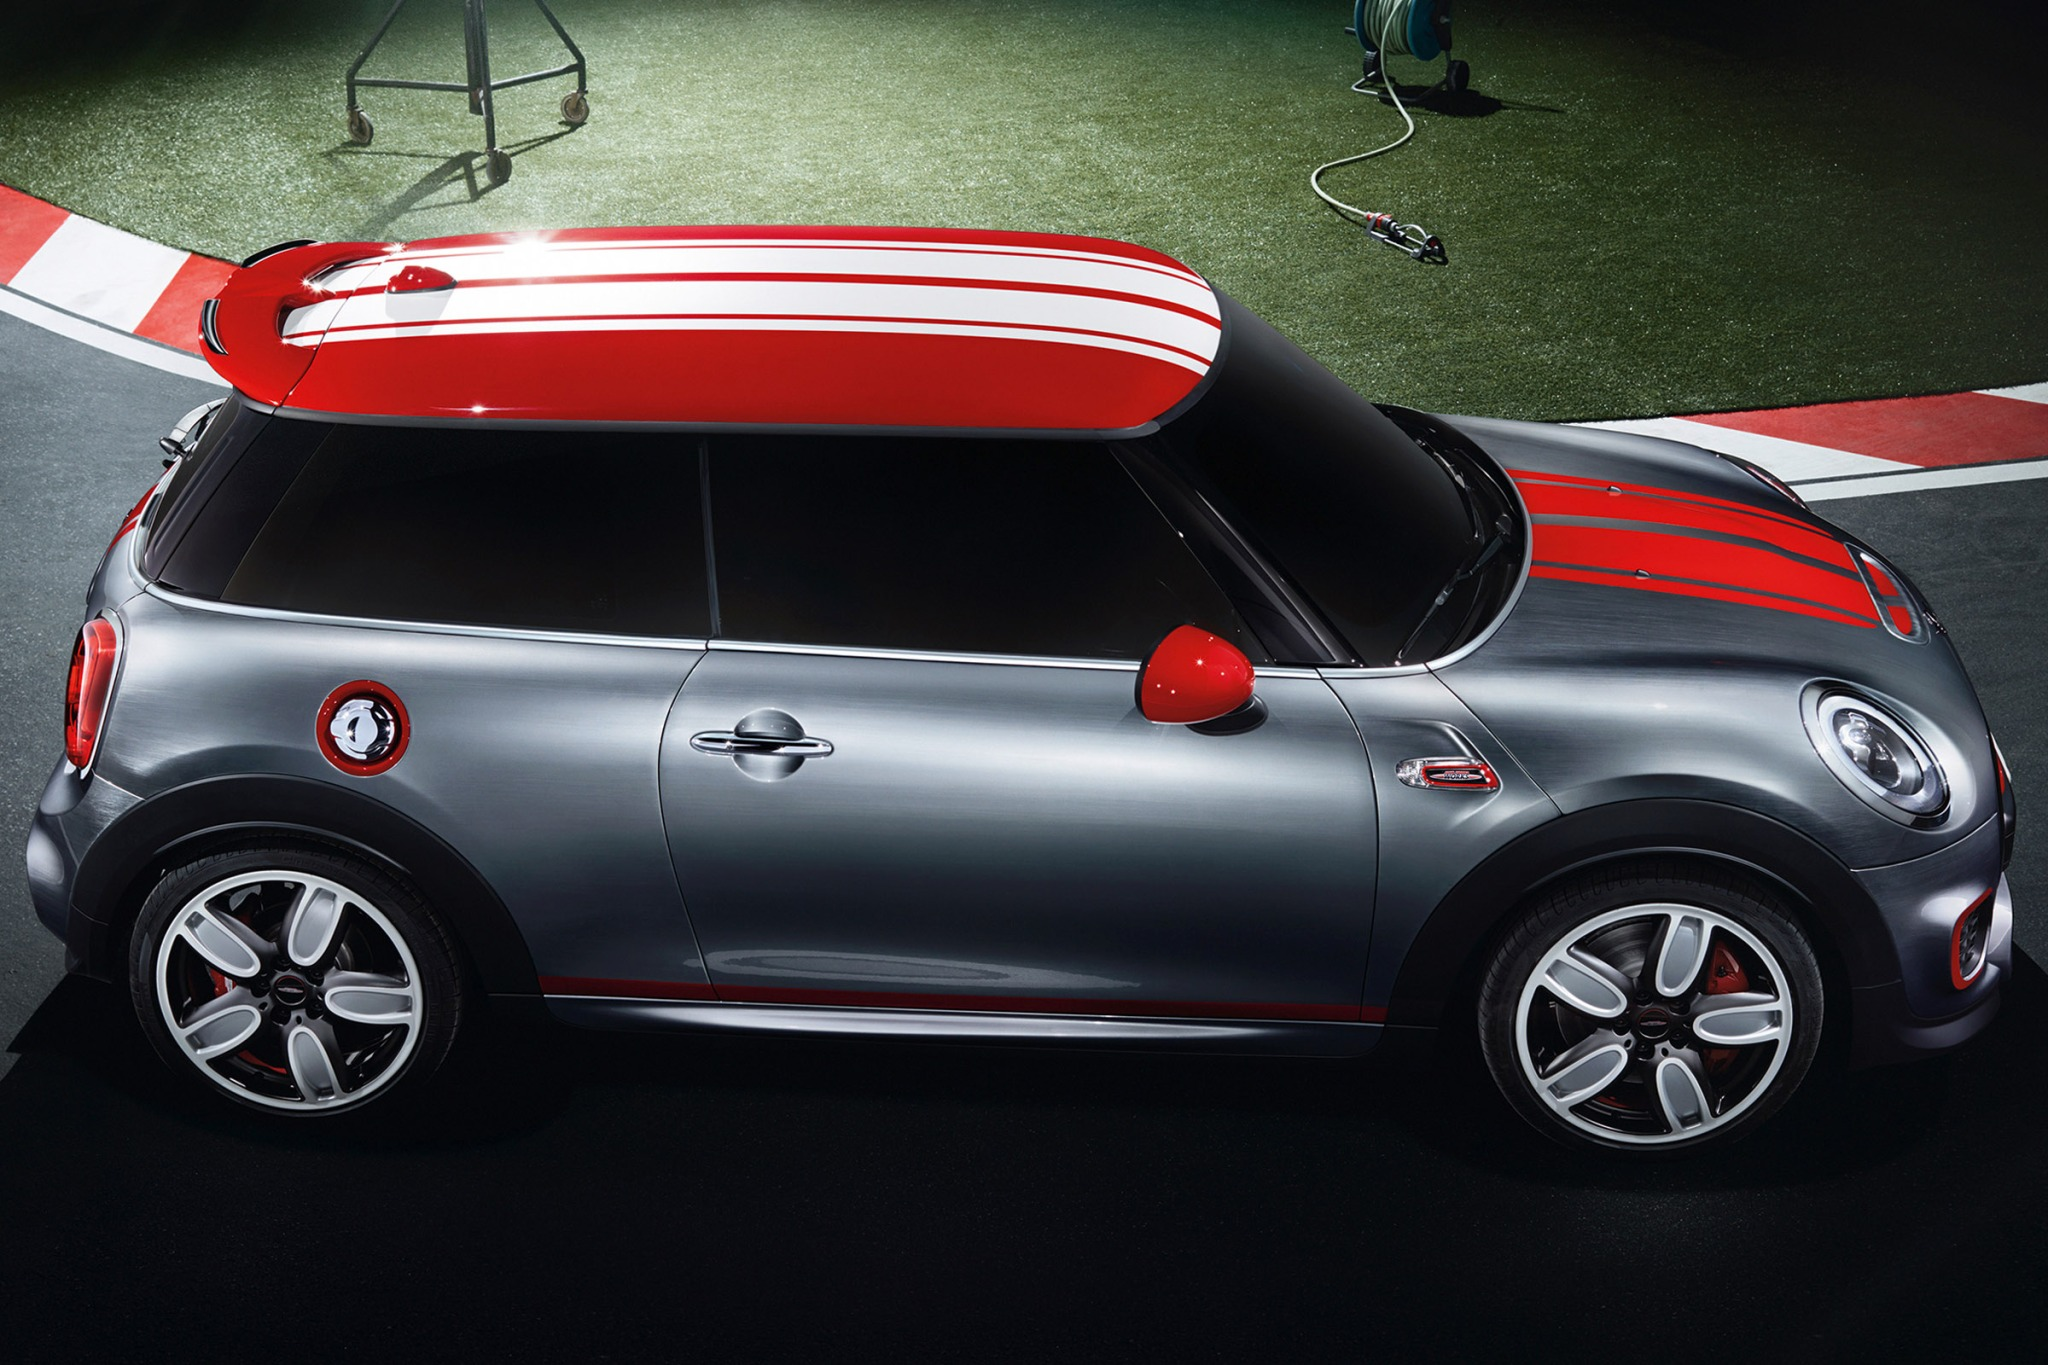 bmw the maker of the mini cooper brand is using what kind of brand strategy with its mini products The cooper brand continues to underpin much of the mini's appeal, and is set to continue to feature enhanced versions of the main mini marque, as well as enabling new models to be tested.